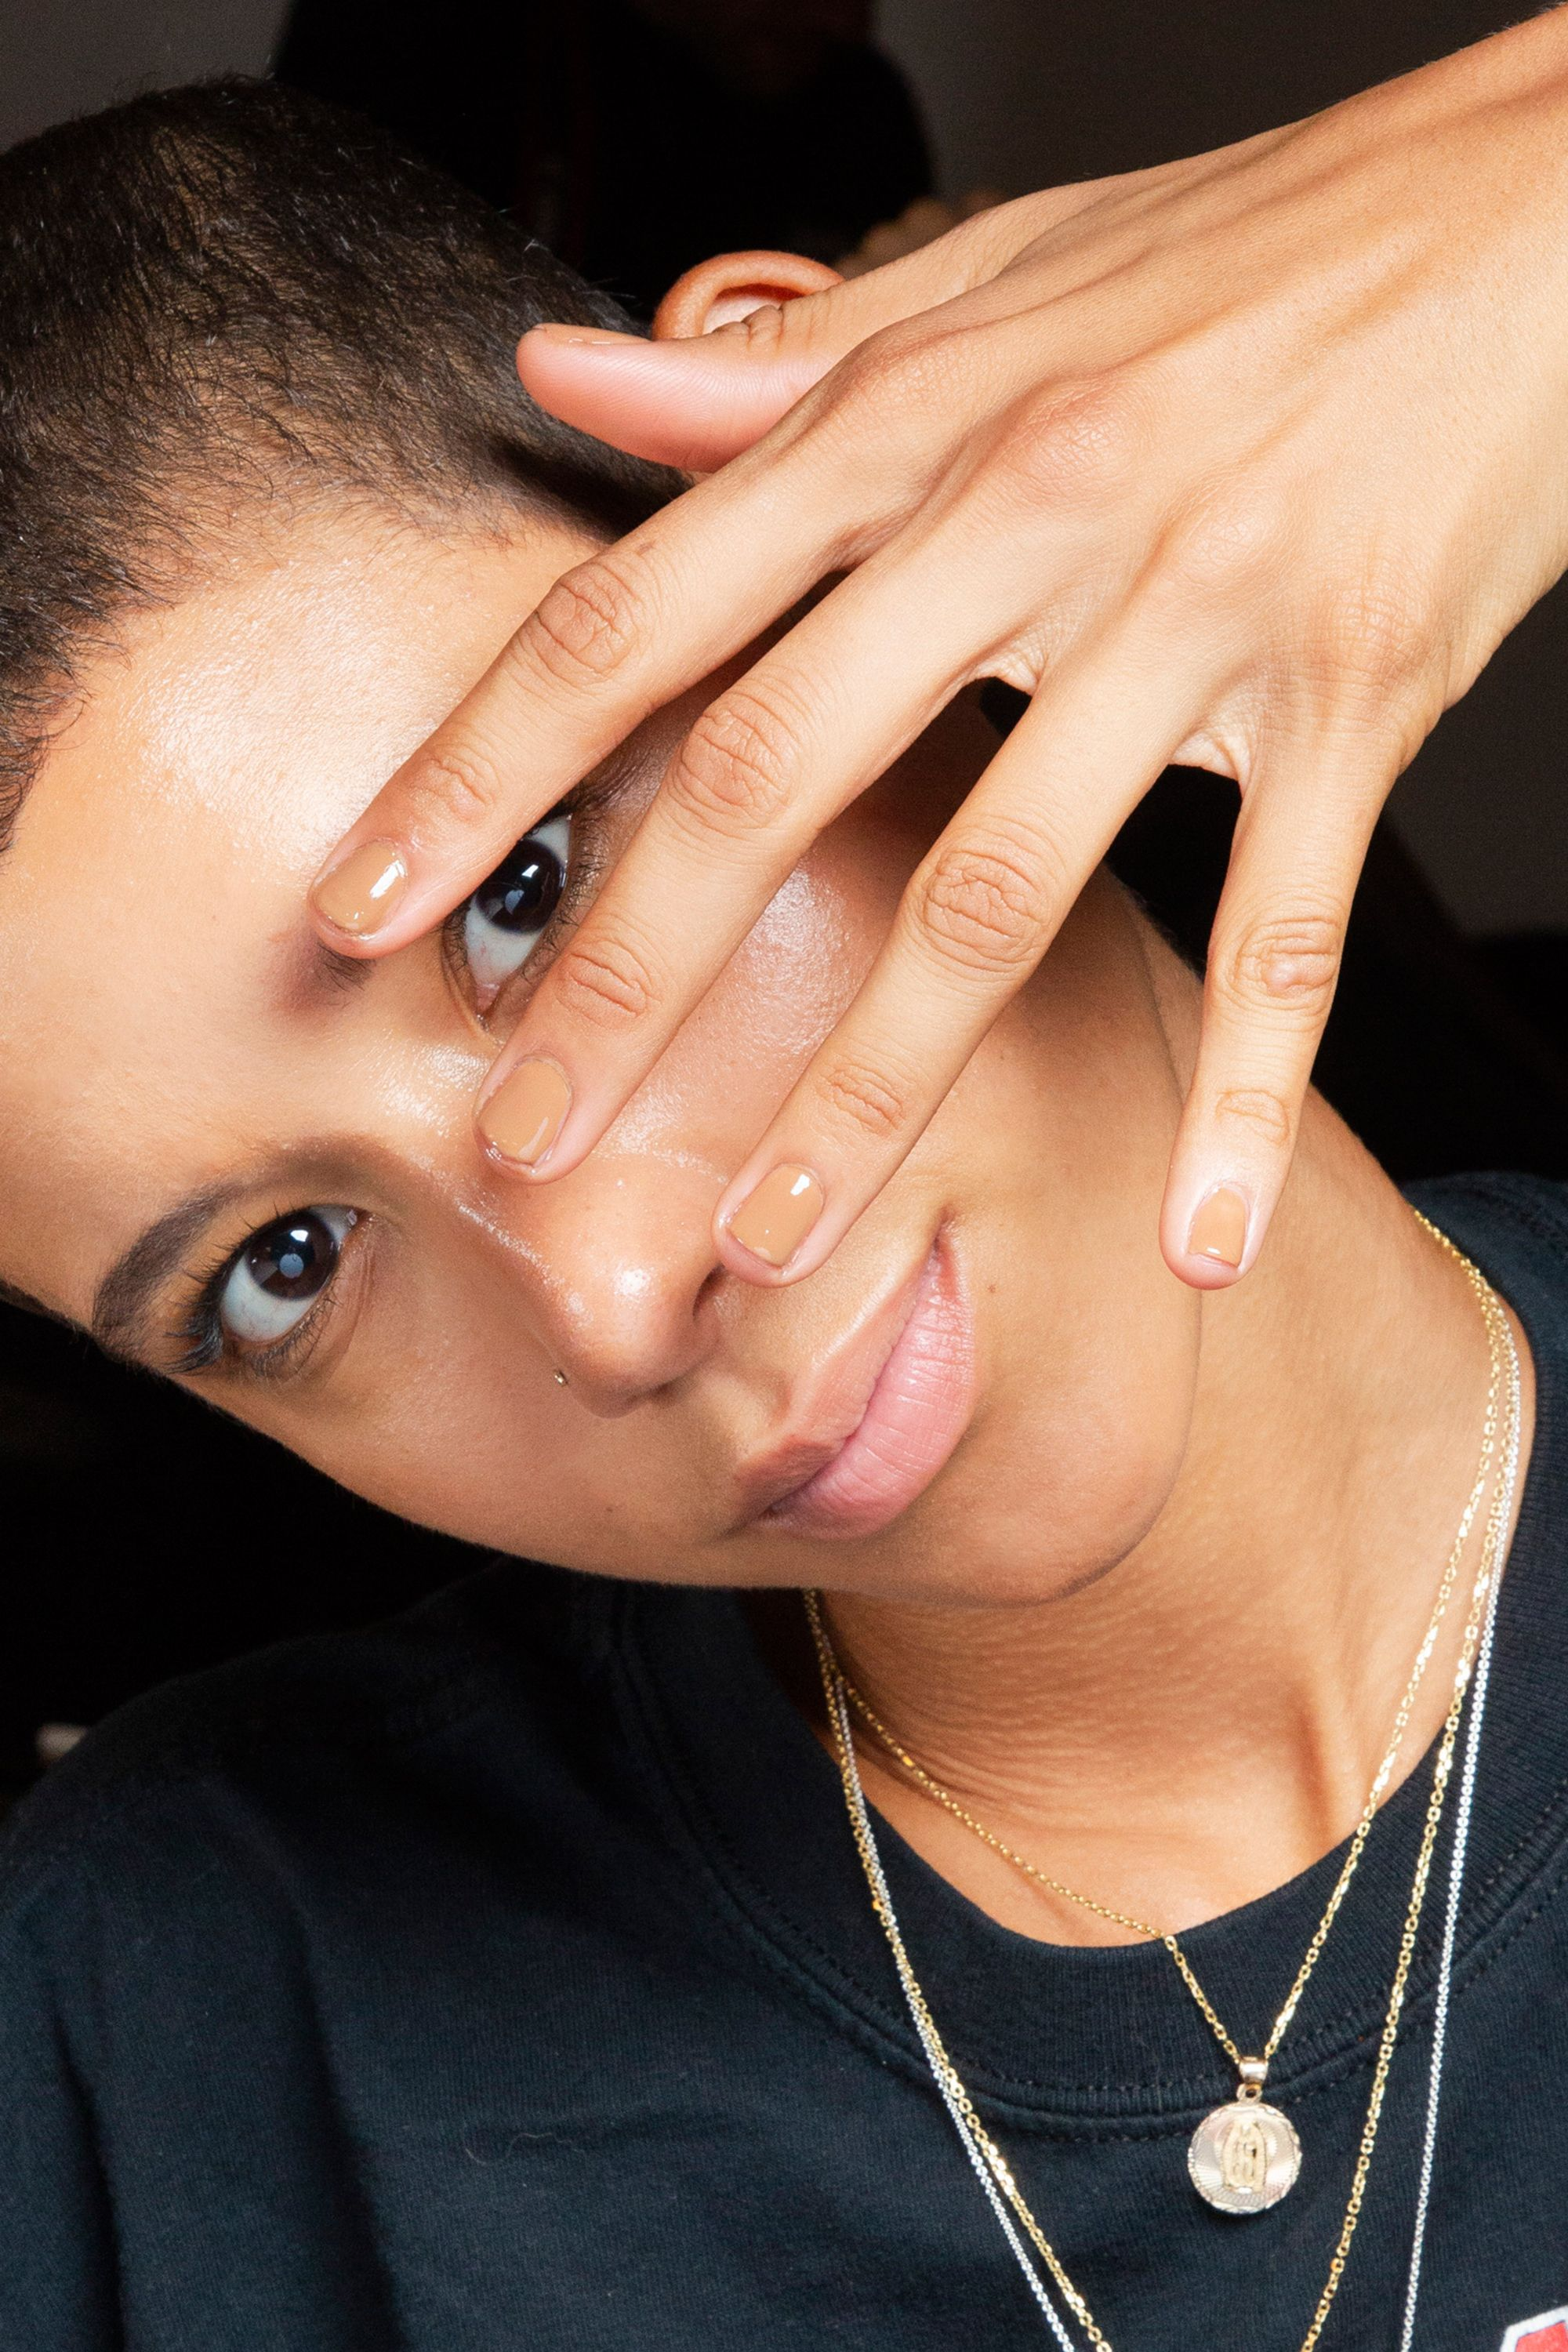 8 spring/summer 2019 nail trends to start wearing now - SS19 nail trends